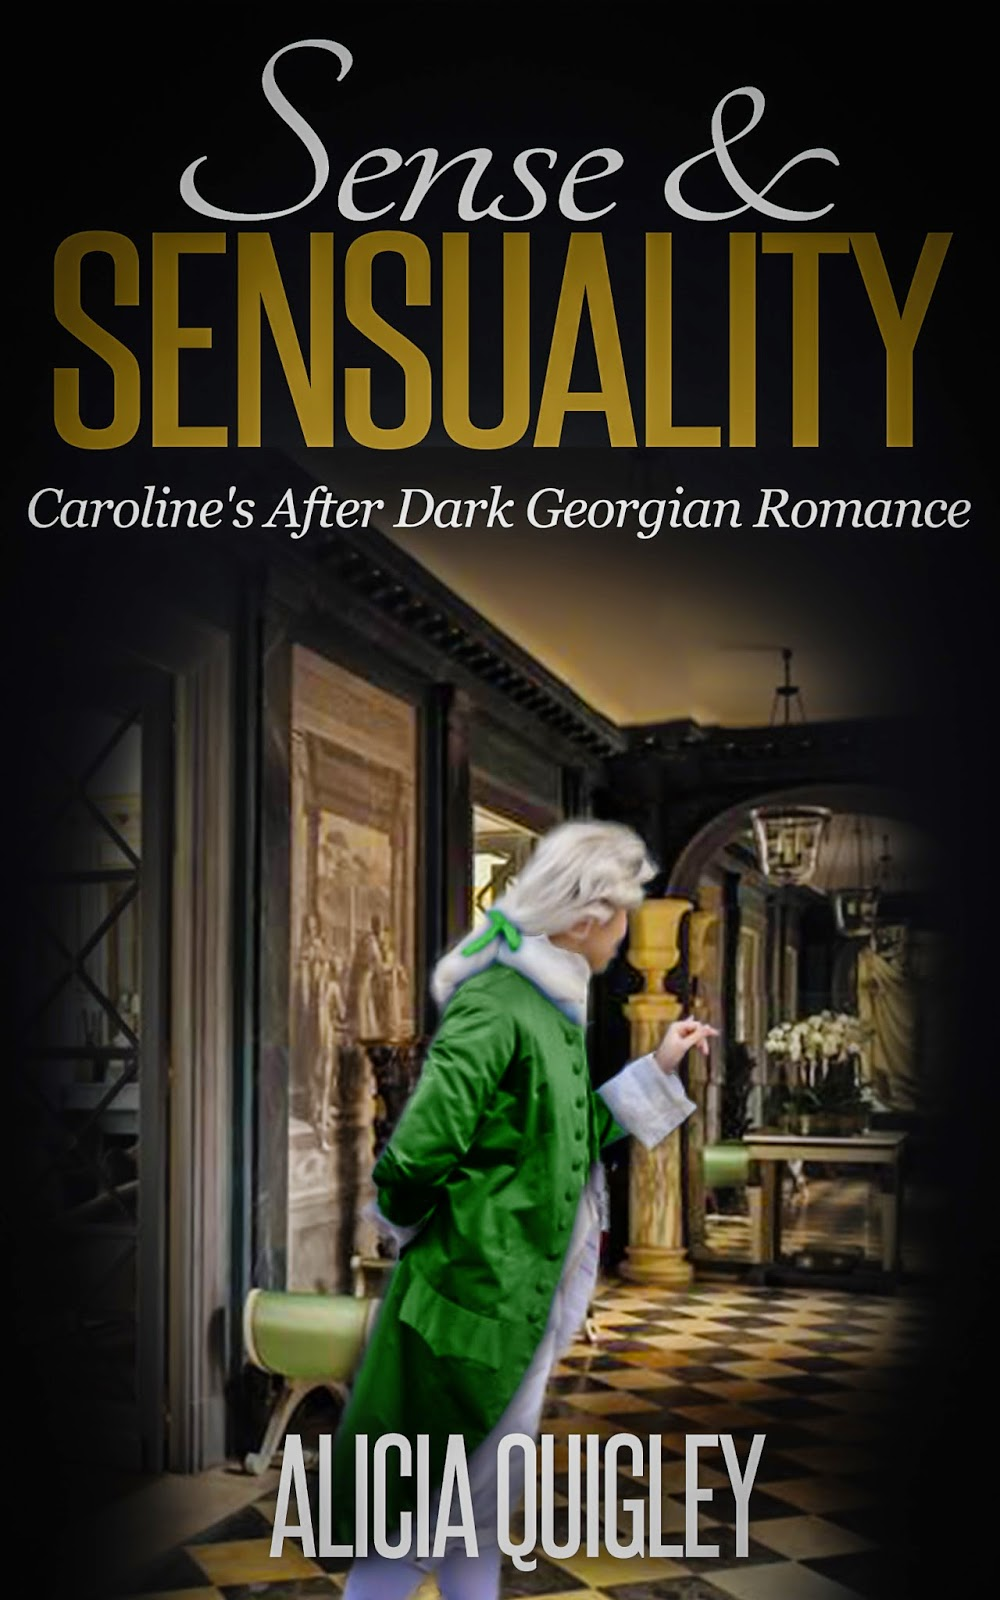 Book cover: Sense & Sensuality by Alicia Quigley